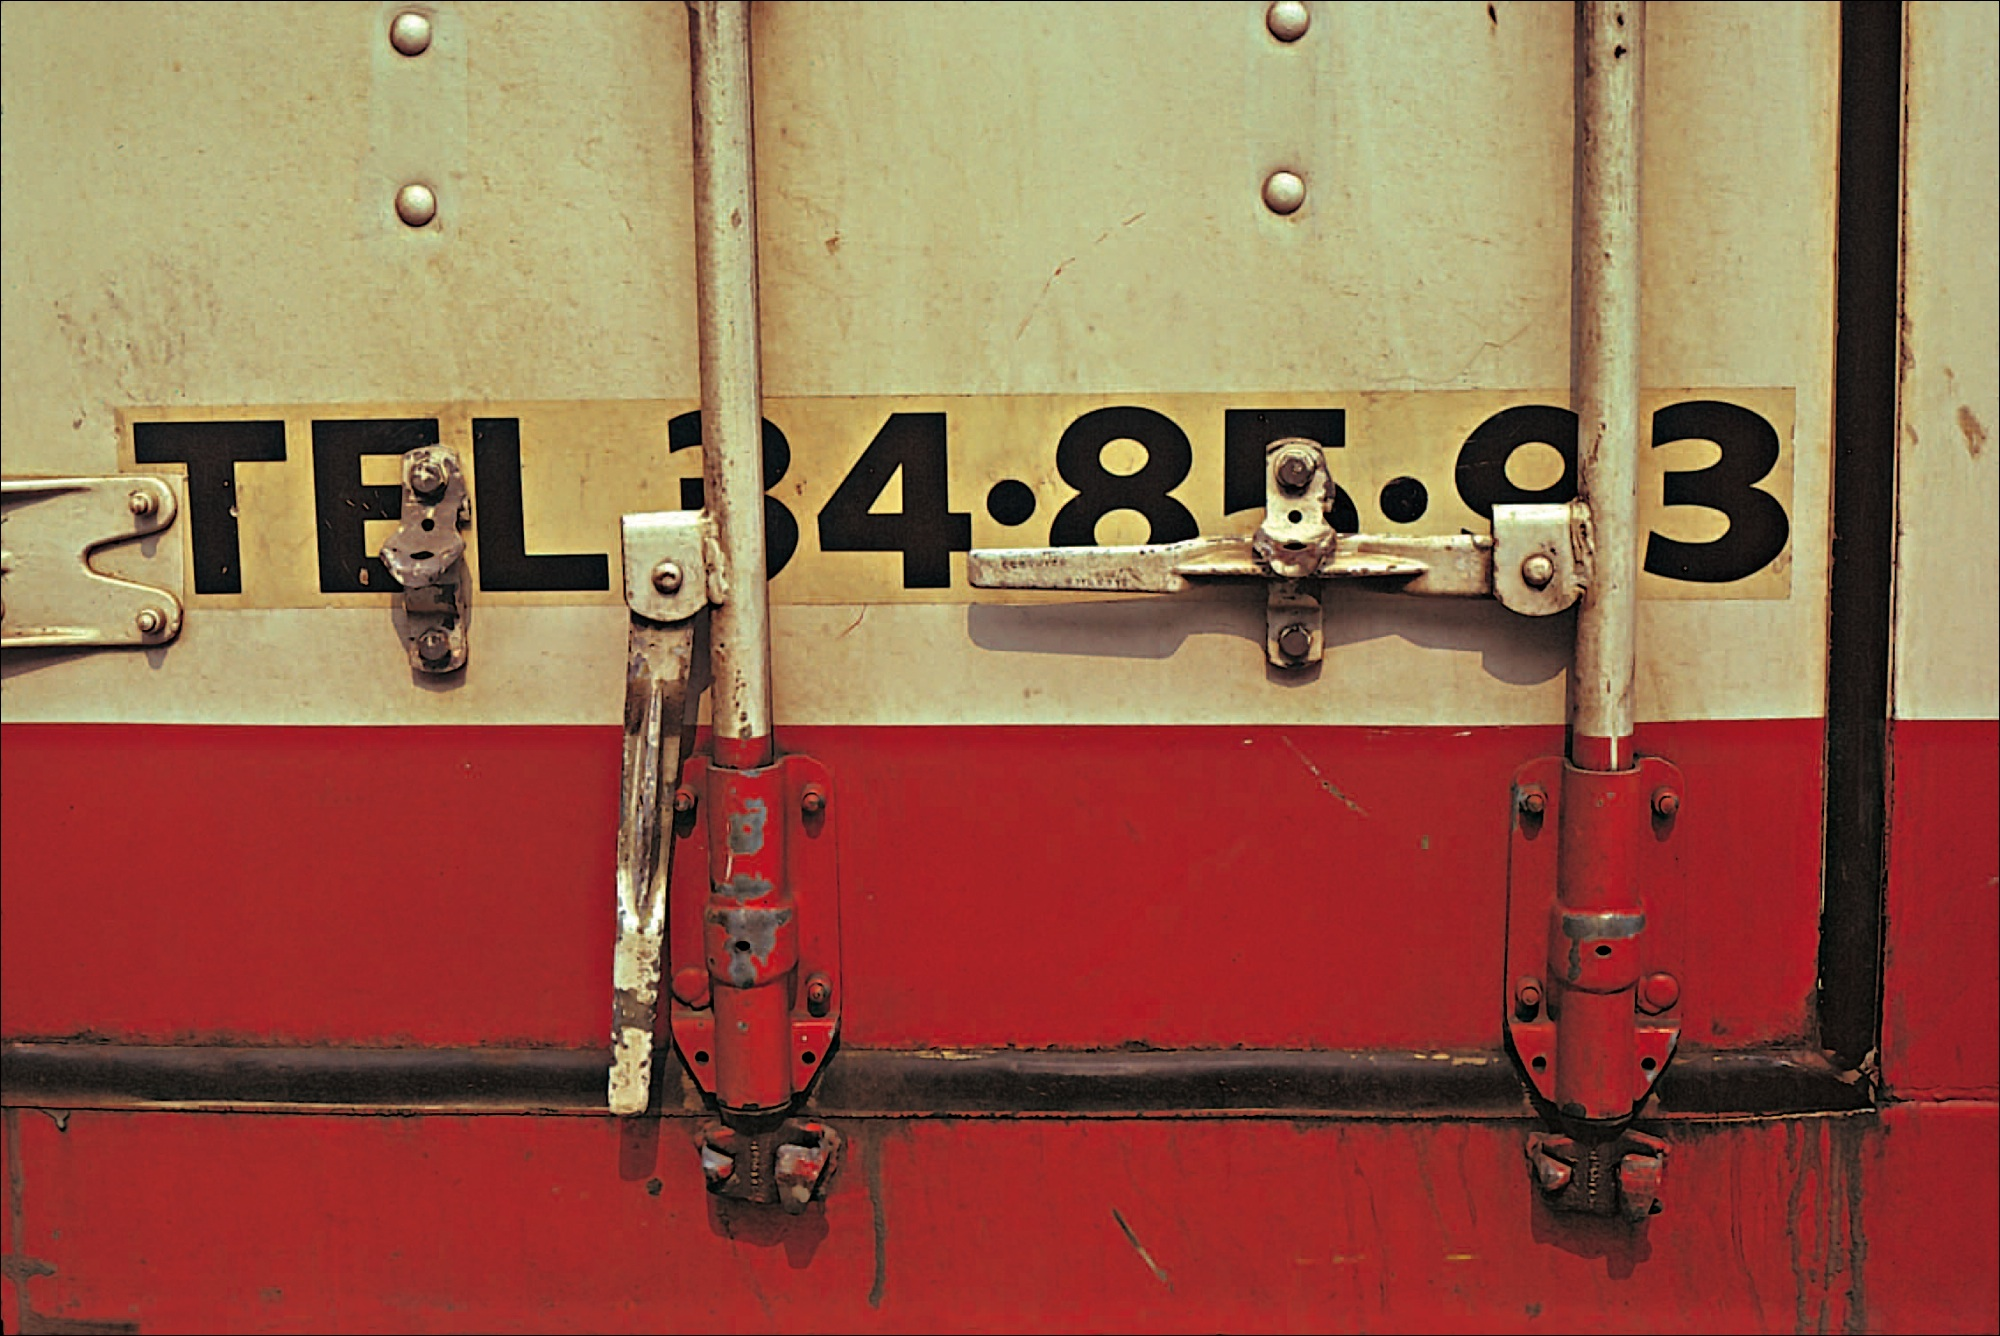 container gris vert rouge 1977